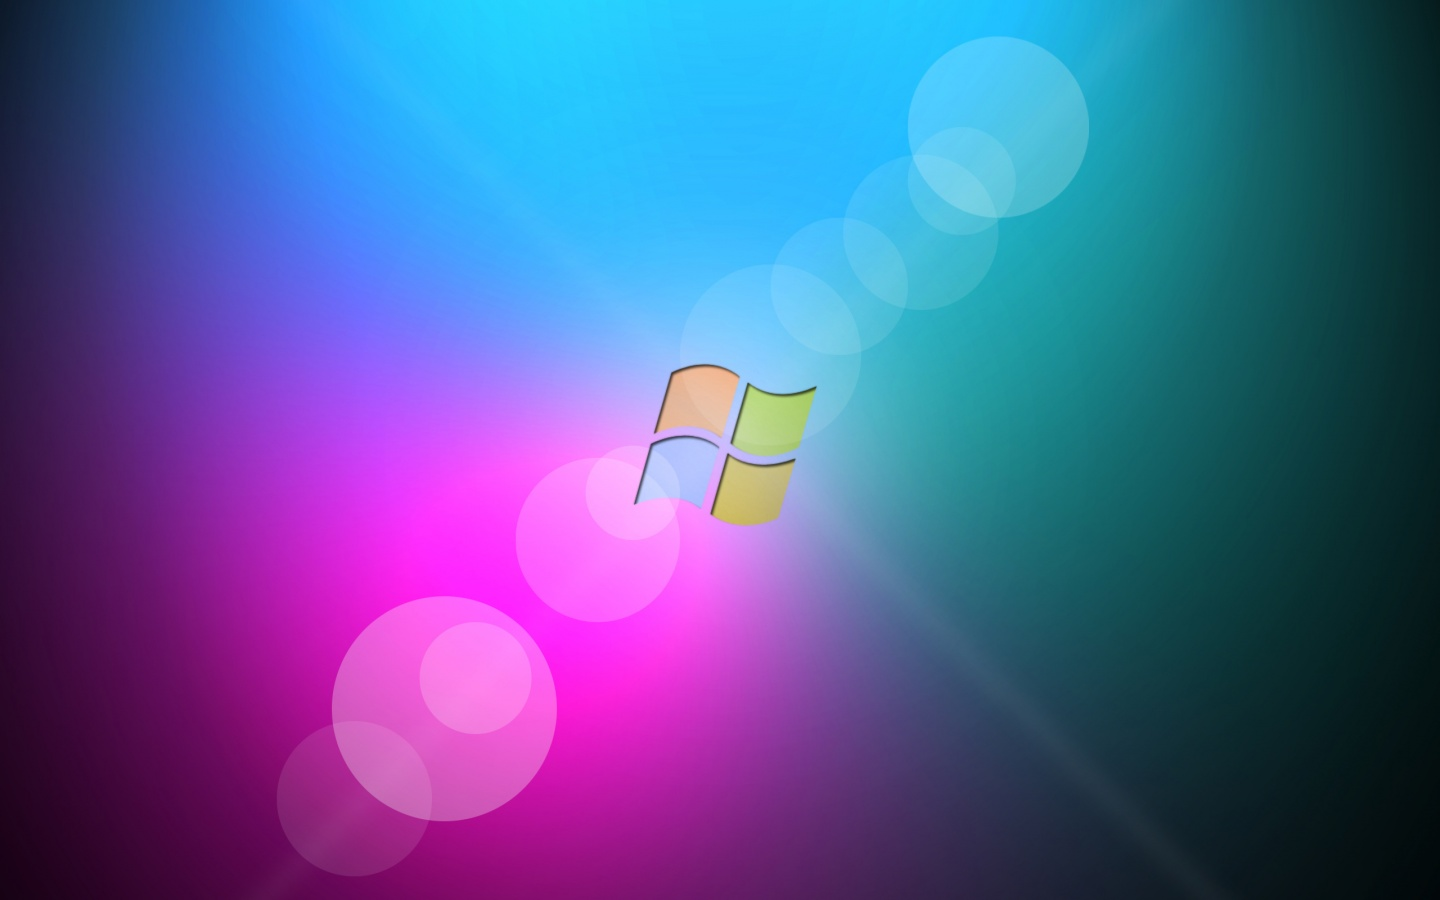 Wallpaper Microsoft For Pc Impact Wallpapers